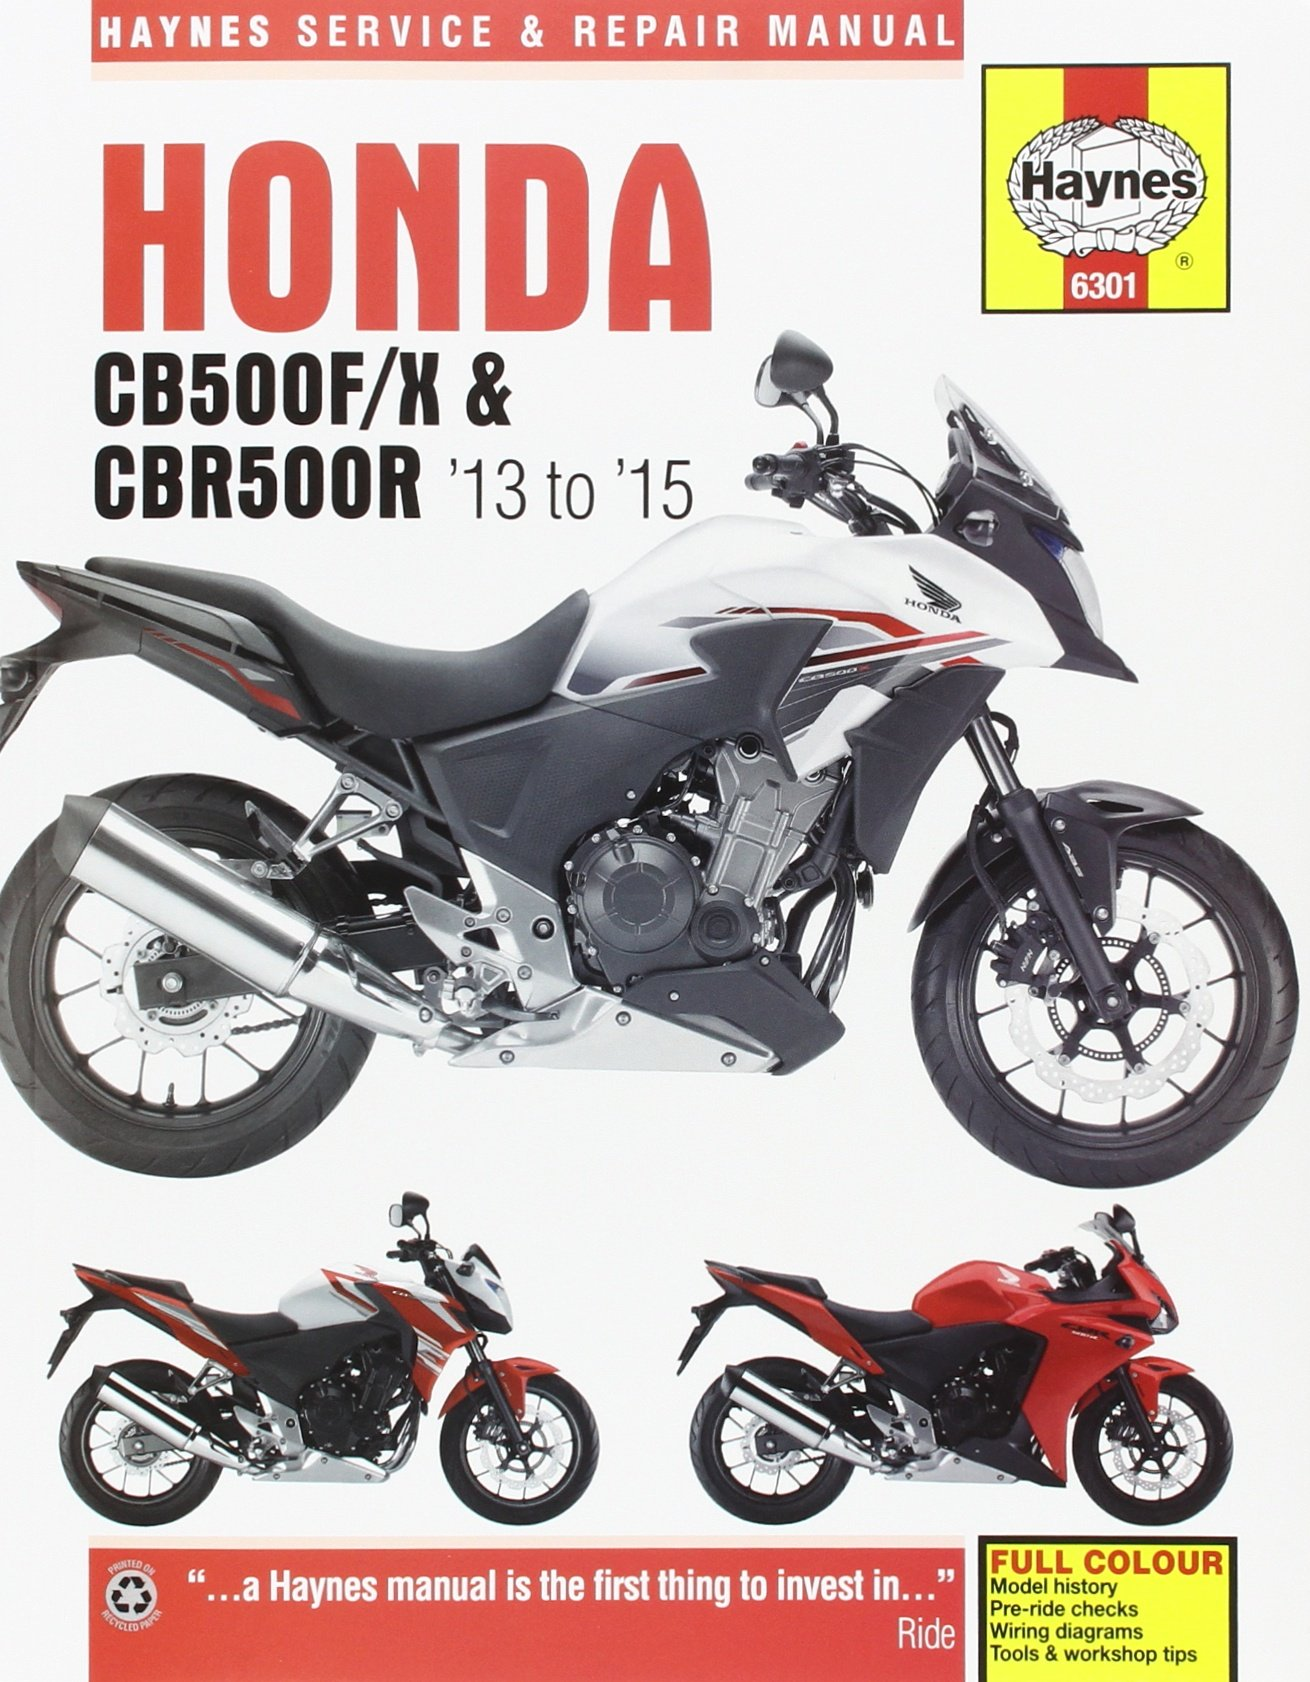 Honda CB500FX and CBR500R Service and Repair Manual 2013 thru 2015 (Haynes  Powersport): Haynes Publishing: 9781785213014: Amazon.com: Books